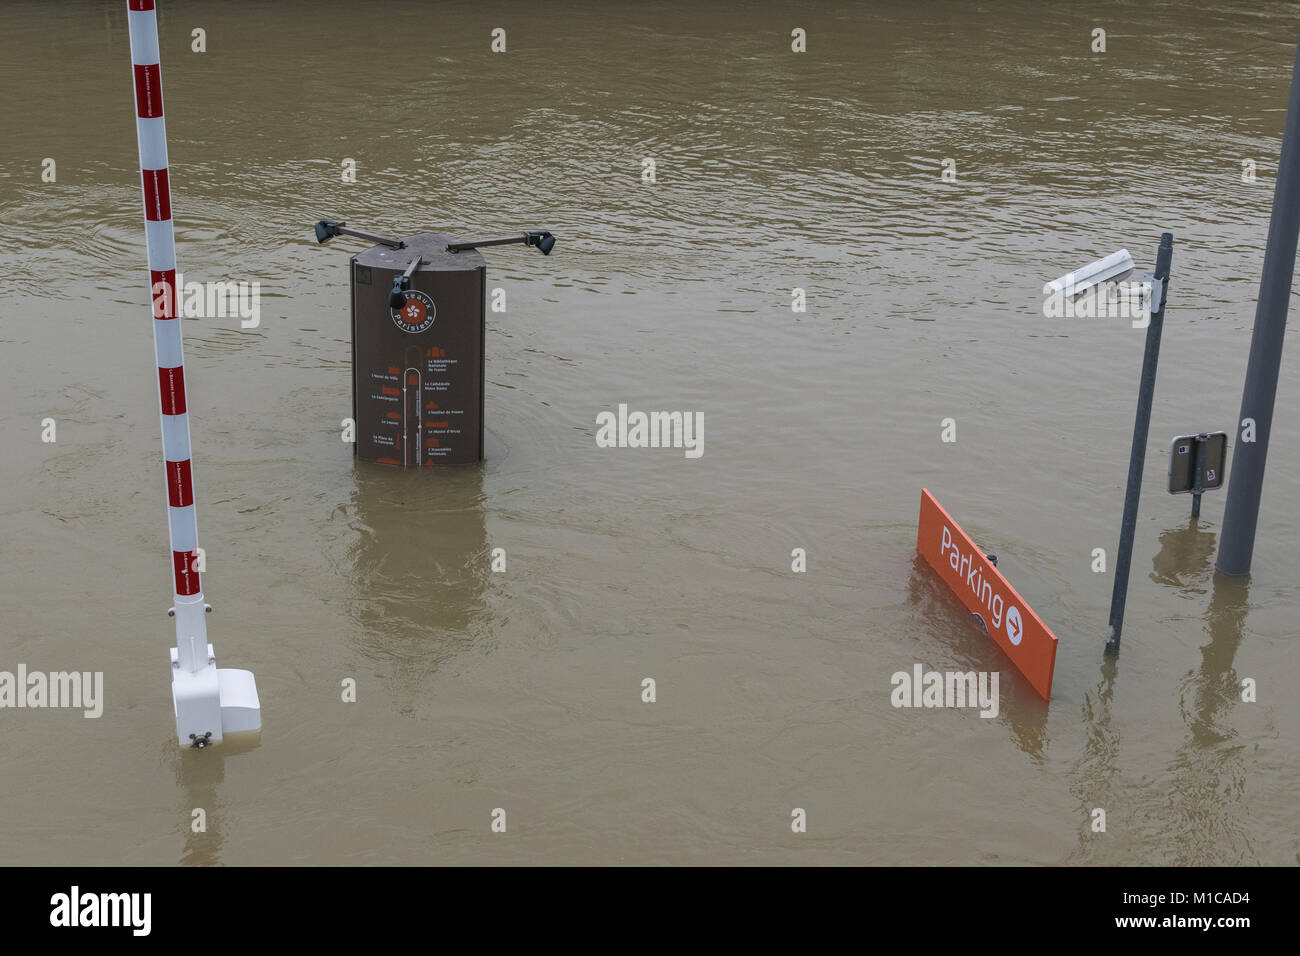 Paris, France. 28th Jan, 2018. Flood water rising in Paris, River Seine in flood January 28 2018 Credit: RichFearon/Alamy - Stock Image